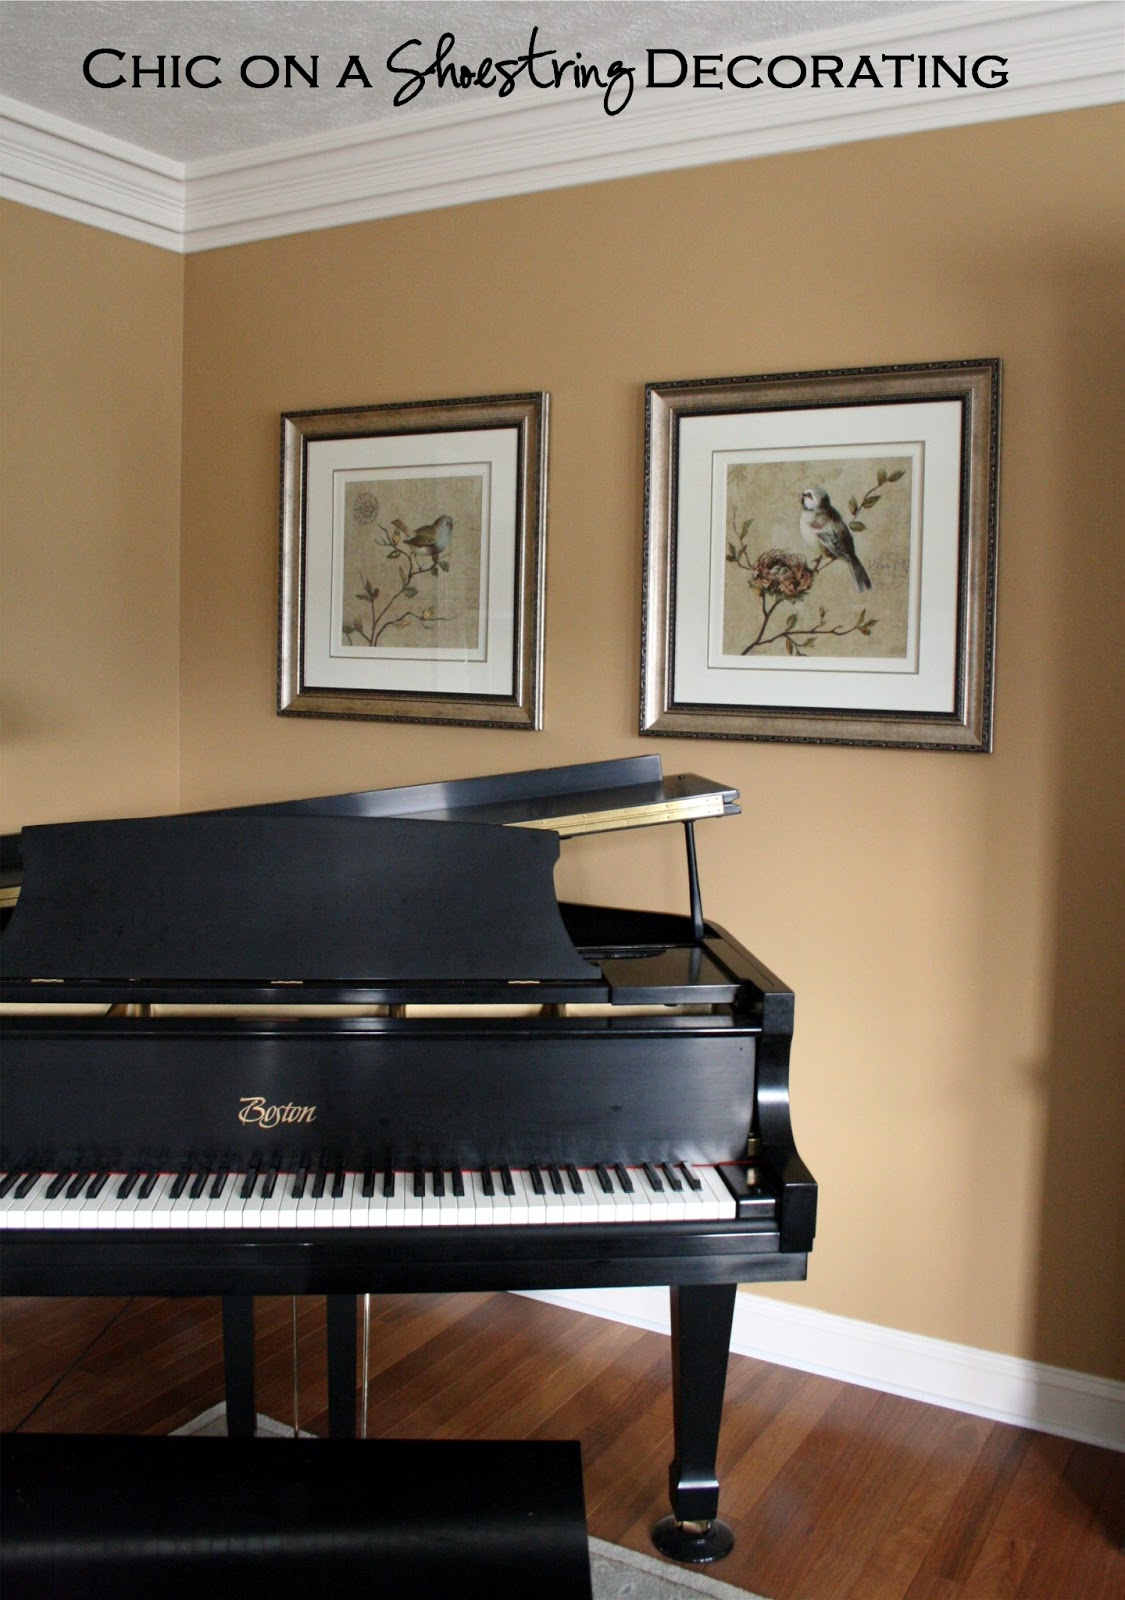 Chic on a shoestring decorating grand piano living room for Where to put a piano in a small house